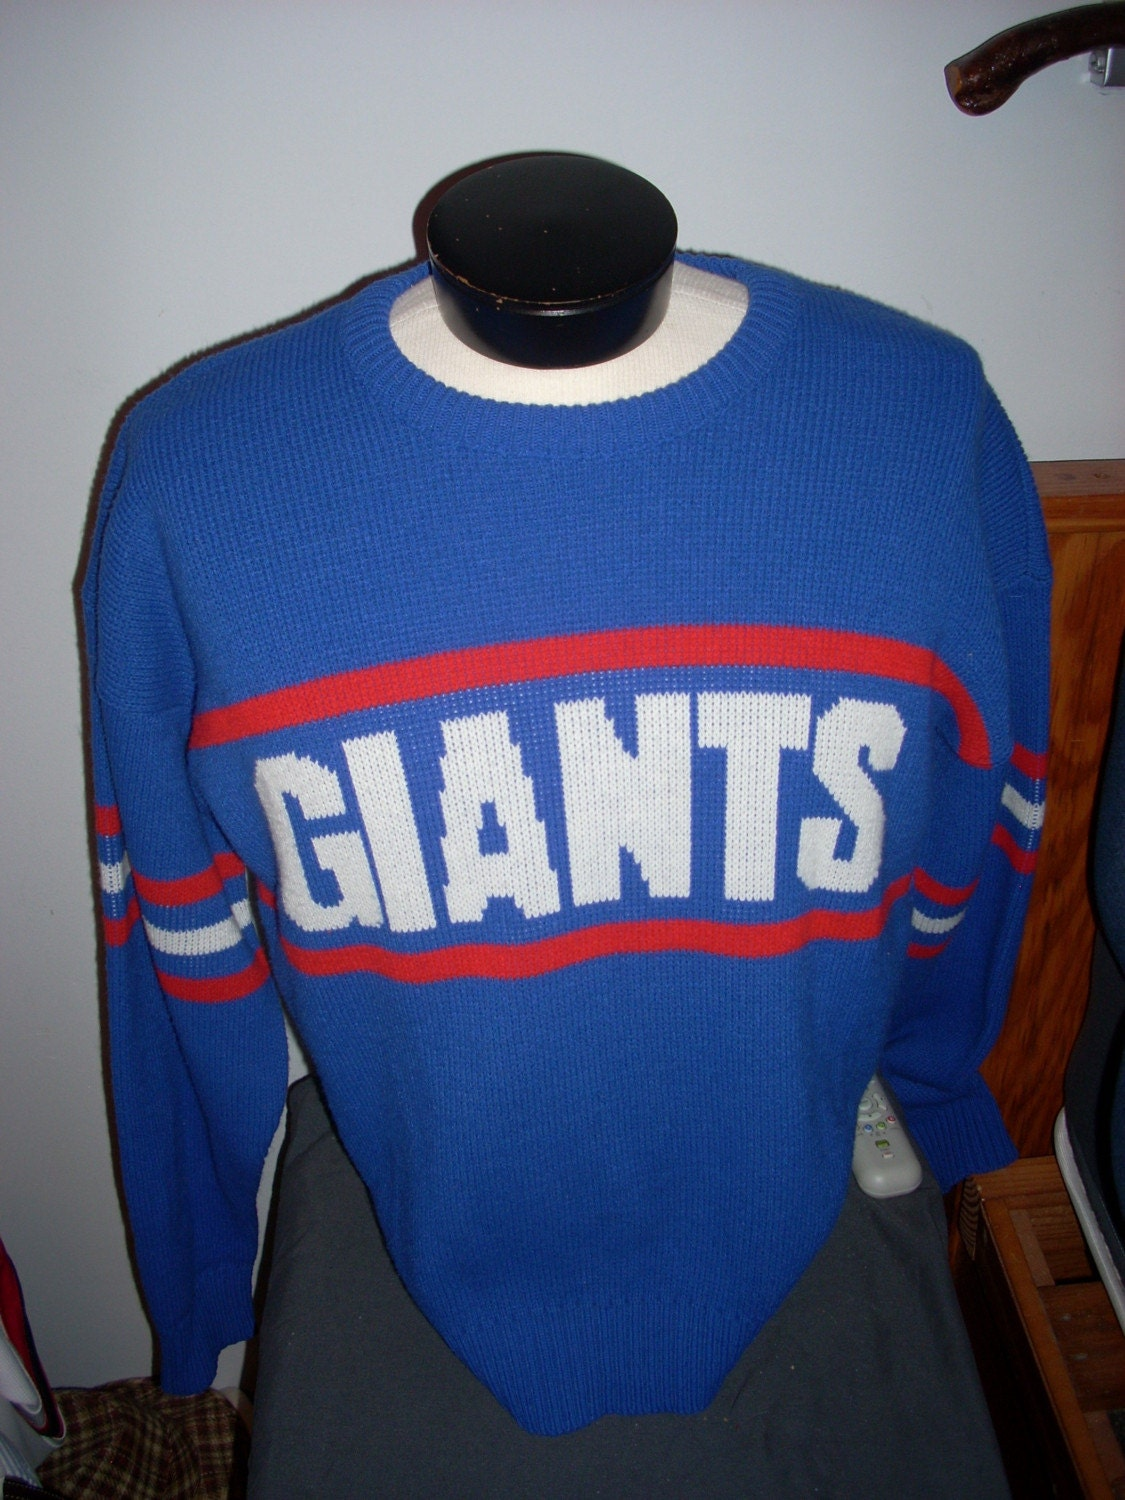 Ny Giants Vintage Sweater - Sweater Tunic